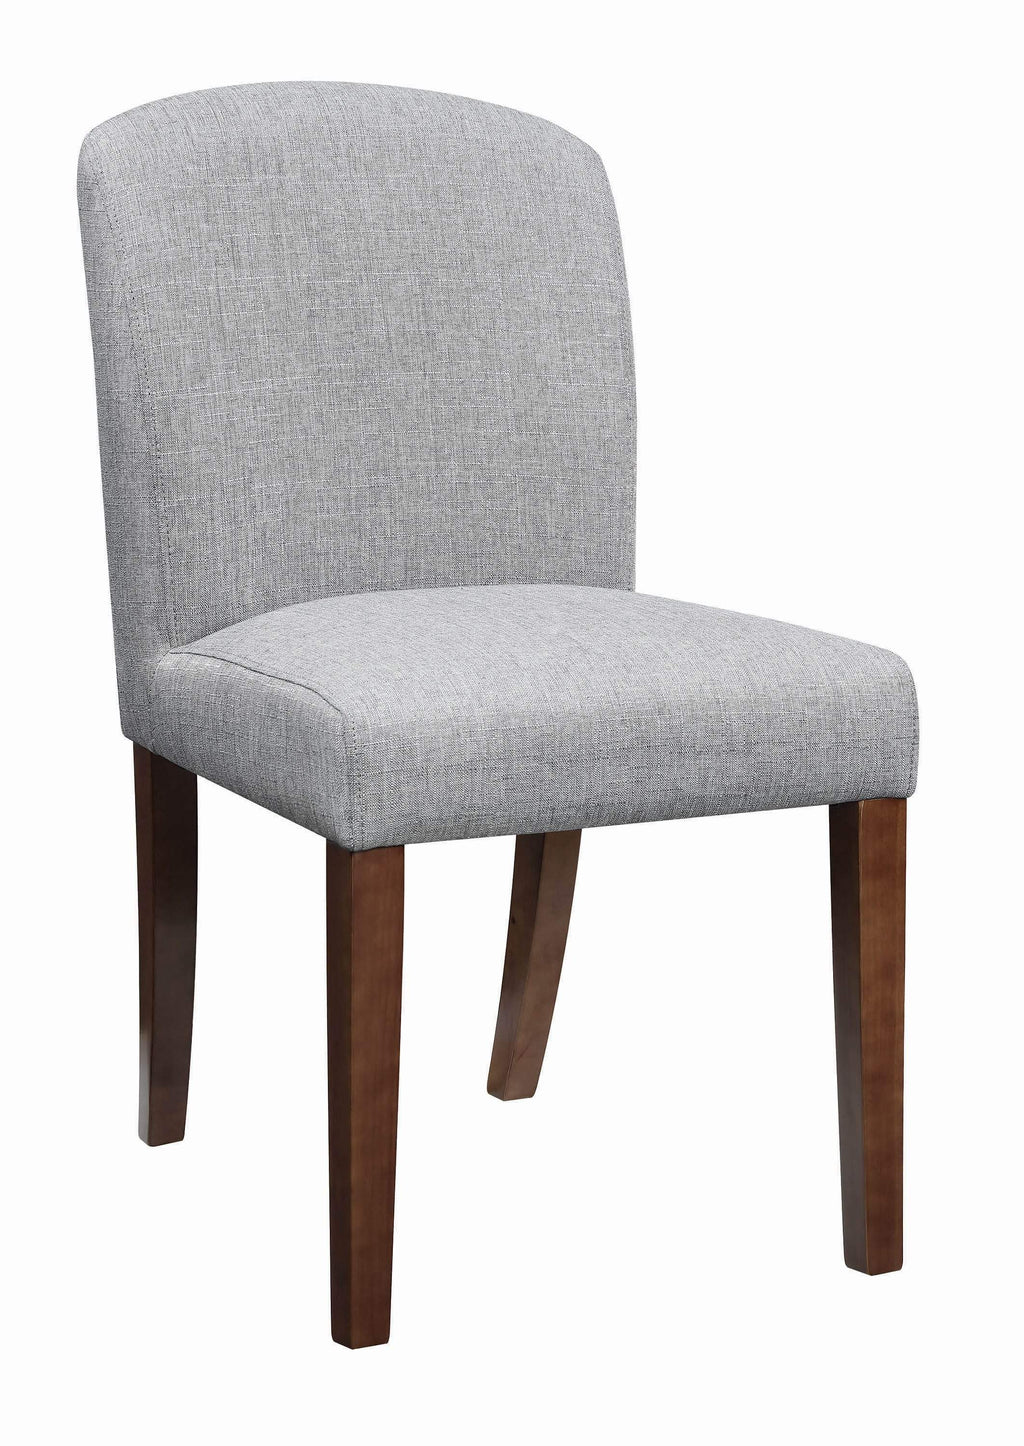 Louise Grey Parson Dining Chair - What A Room